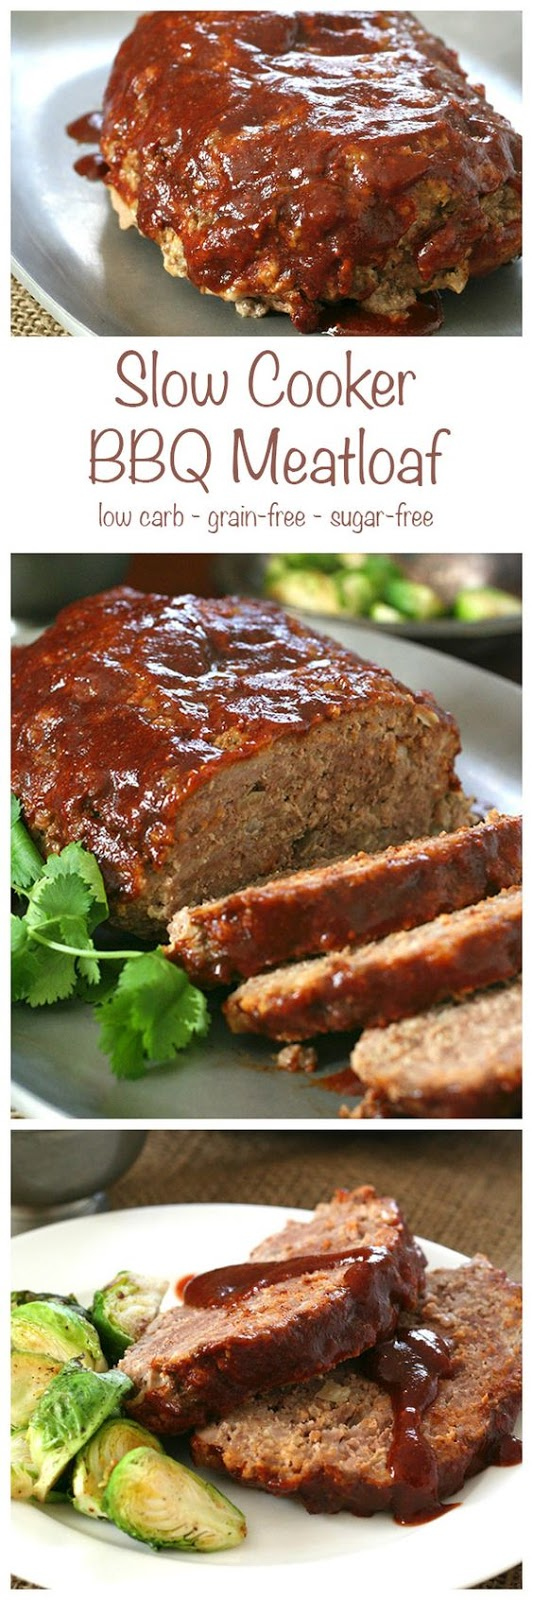 SLOW COOKER BARBECUE MEATLOAF RECIPES